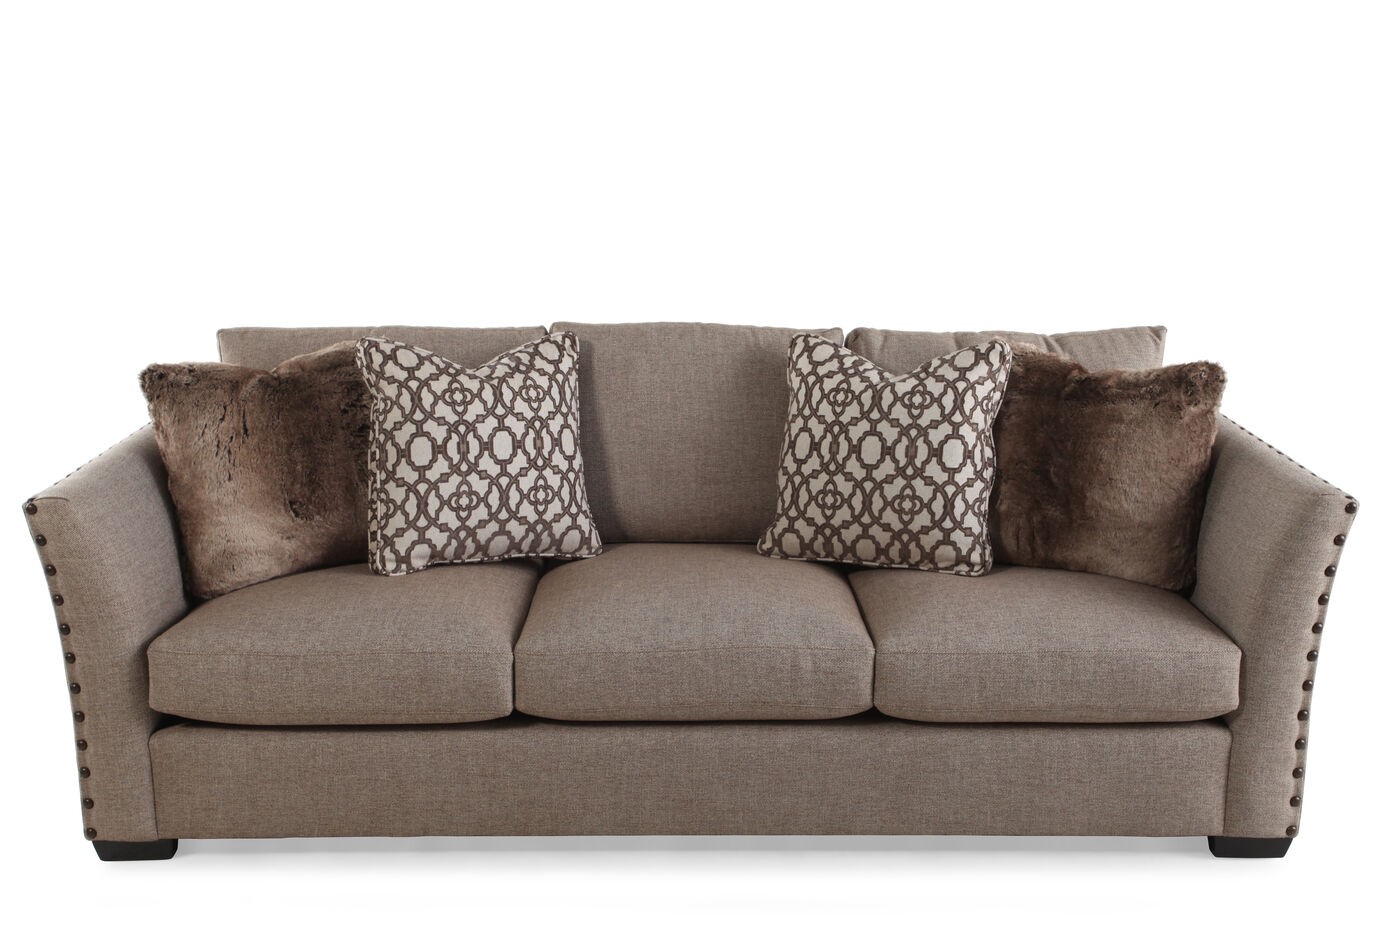 Bernhardt brinton sofa mathis brothers furniture for Where to buy bernhardt furniture online